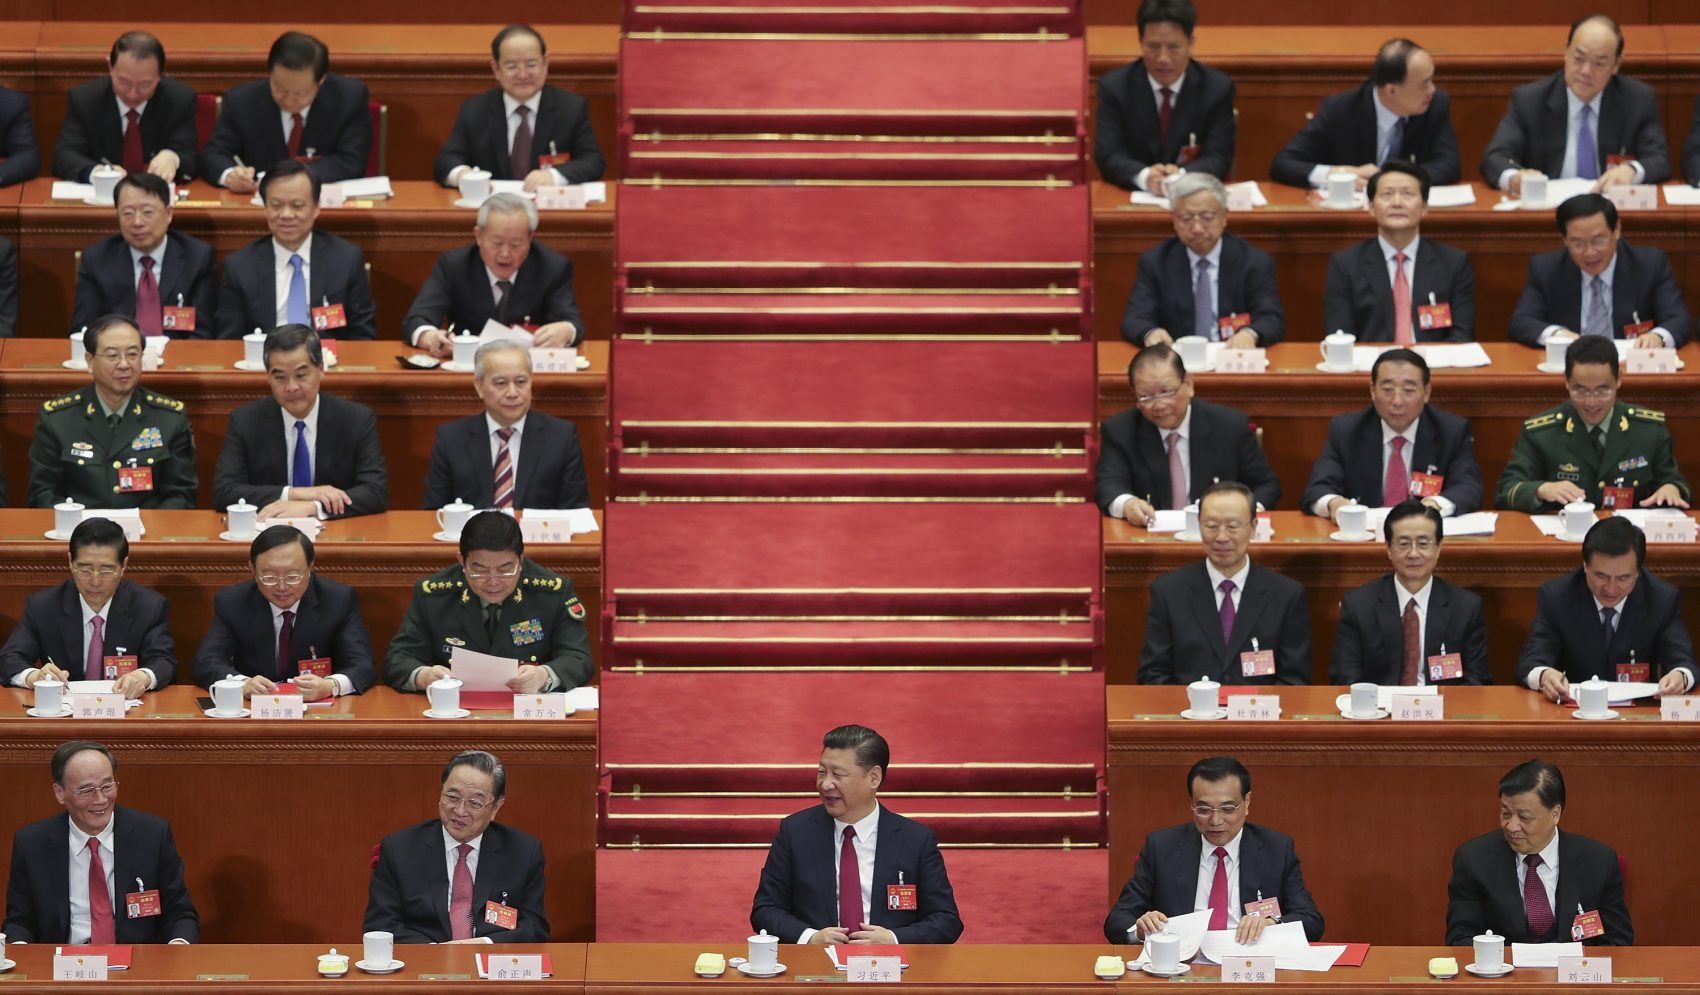 Chinese President Xi Jinping (center) at the closing meeting of the Fifth Session of the 12th National People's Congress (NPC) at the Great Hall of the People on March 15, 2017 in Beijing, China. (Lintao Zhang/Getty Images)